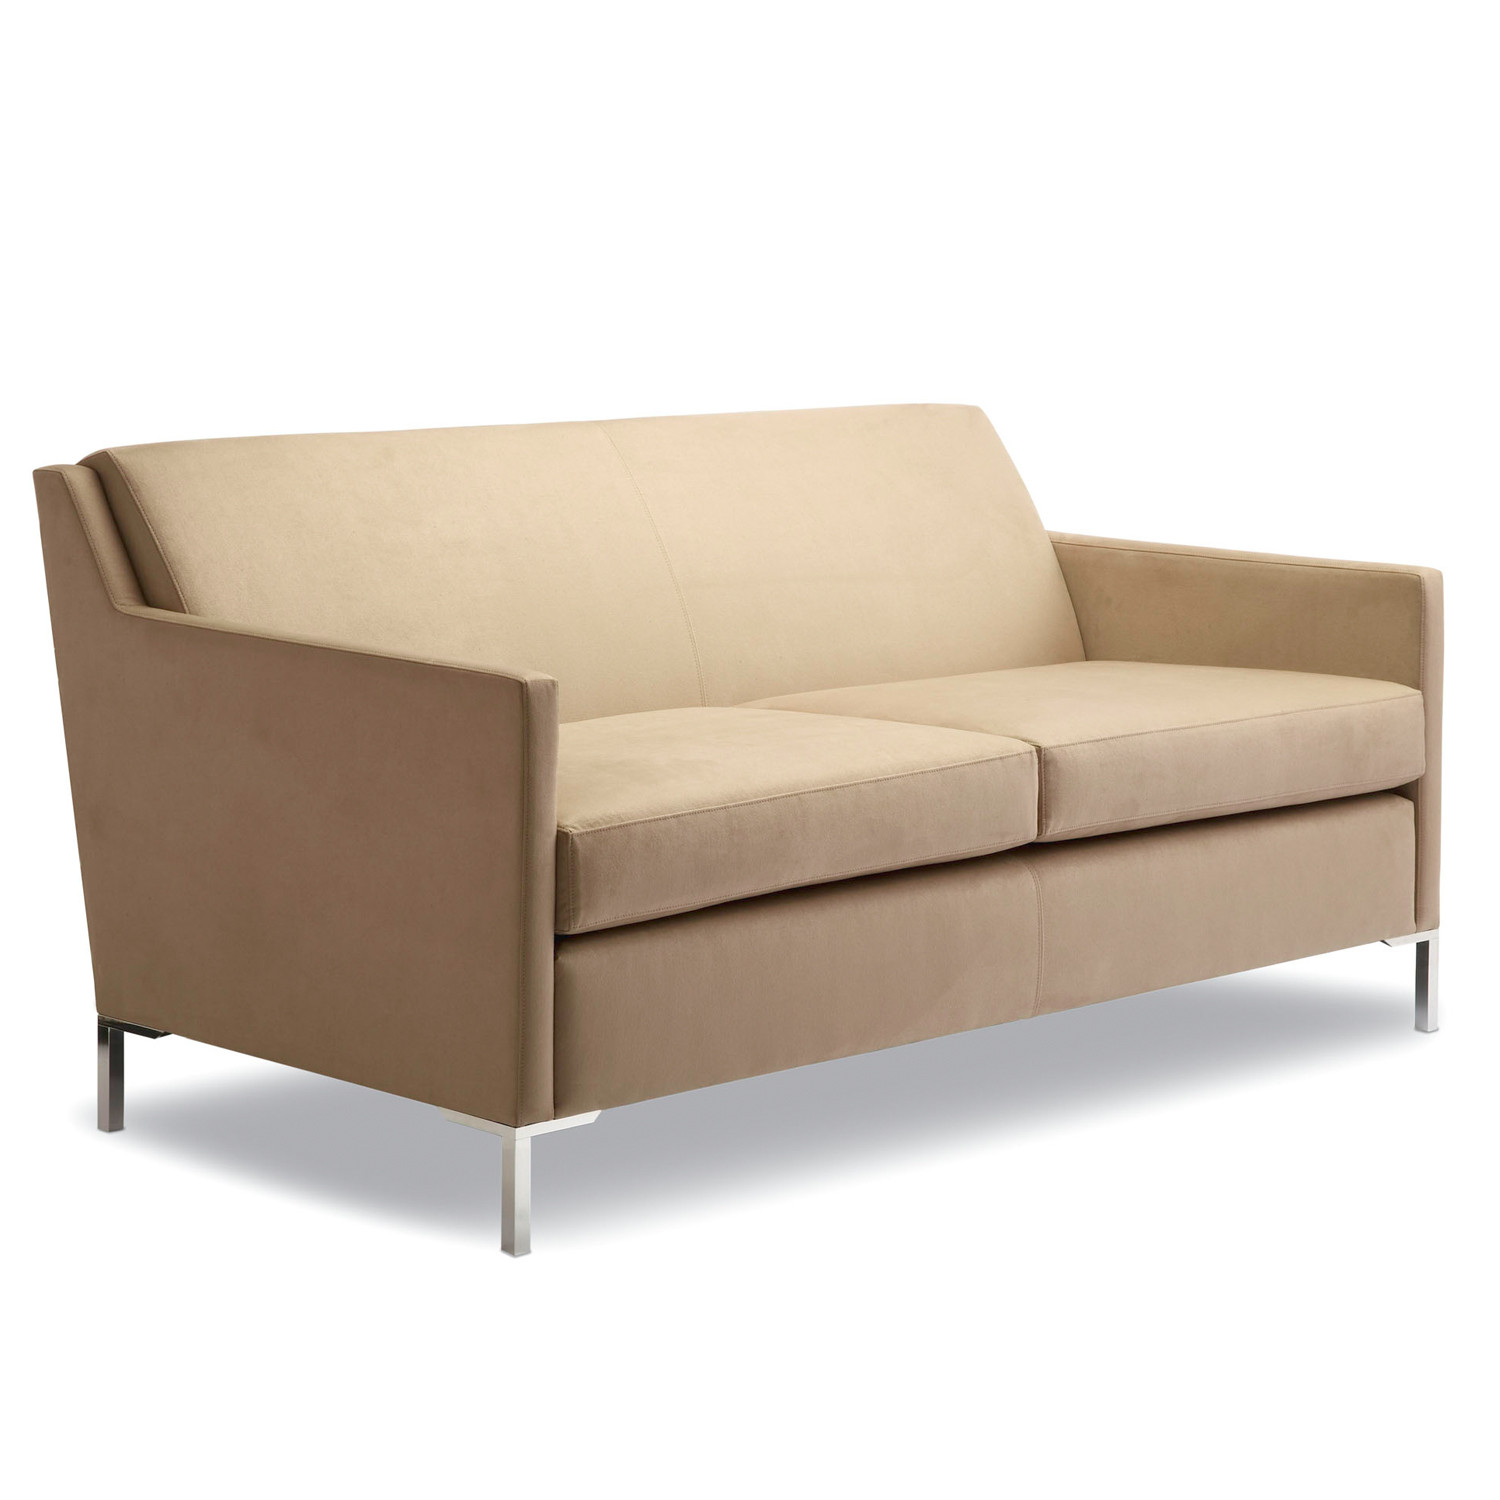 Aspect Two-seater Sofa